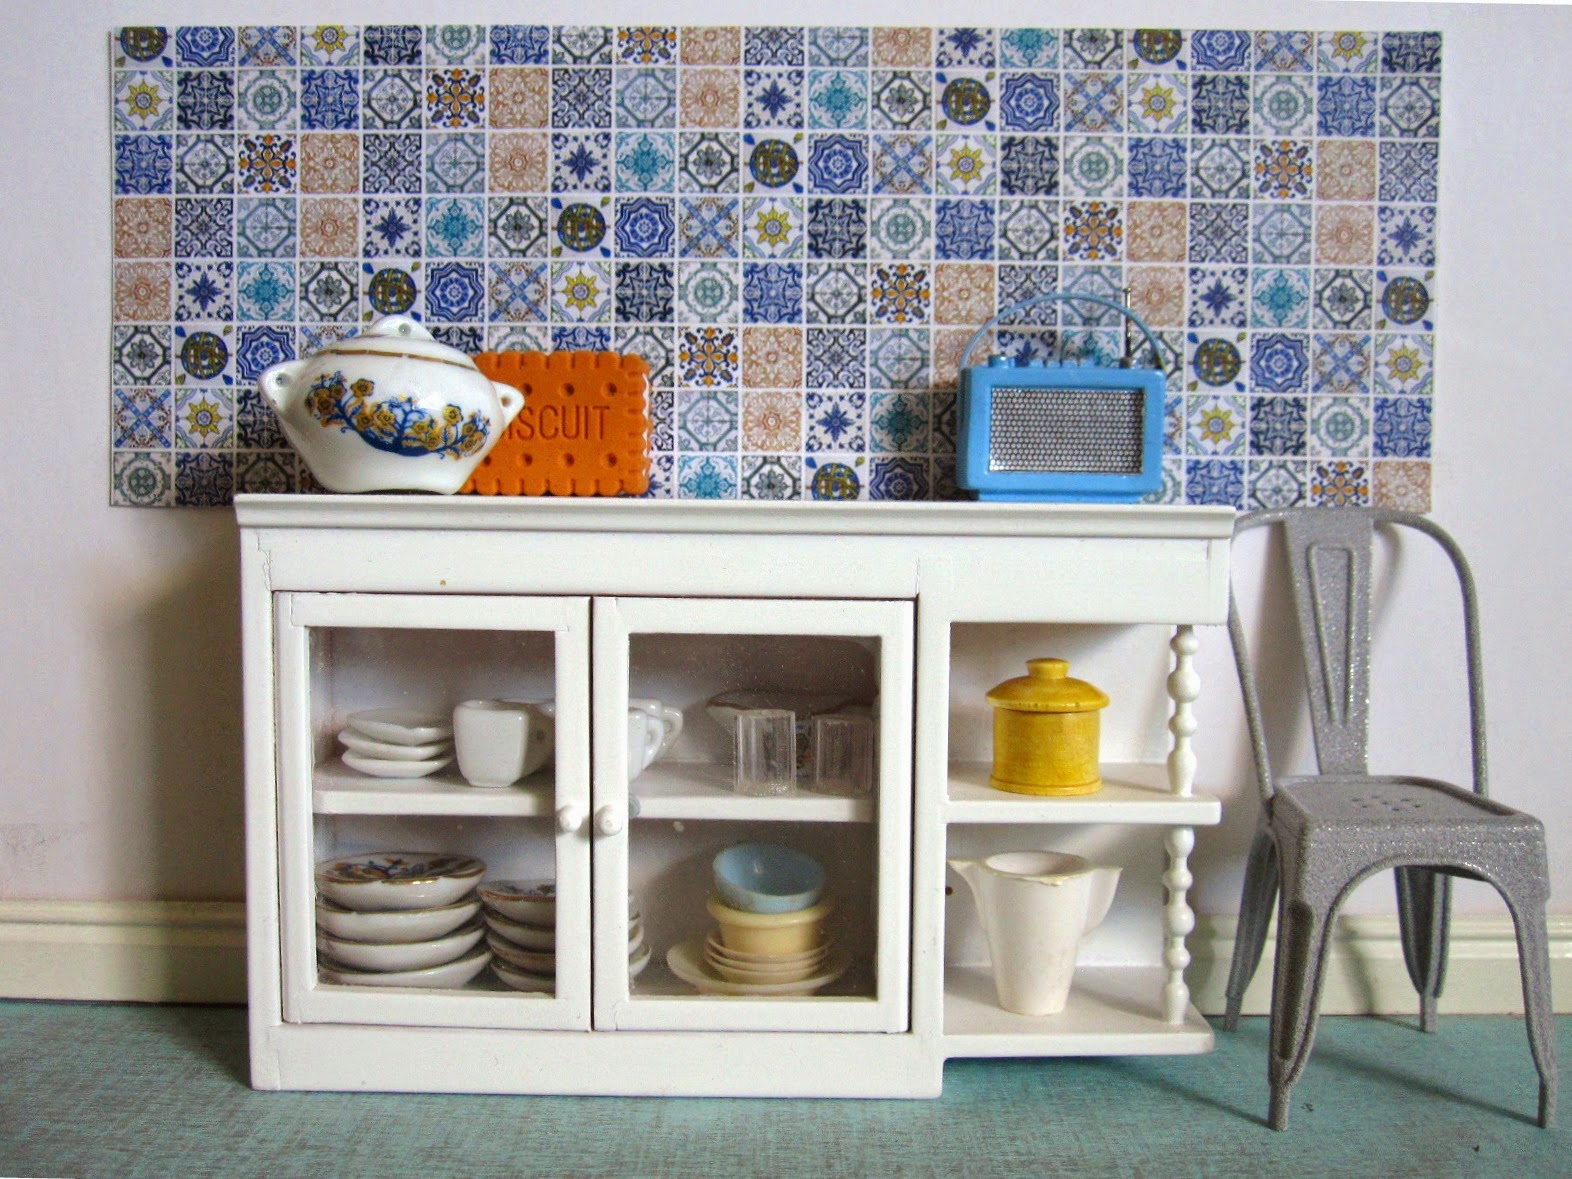 Modern dolls house miniature kitchen scene with a white glass-fronted cupboard full of crockery in front of a wall tiled with various blue and white tiles. Next to teh cupboard is a french cafe chair and on top is a tureen, a giant ornamental biscuit and a Roberts-style radio in blue.